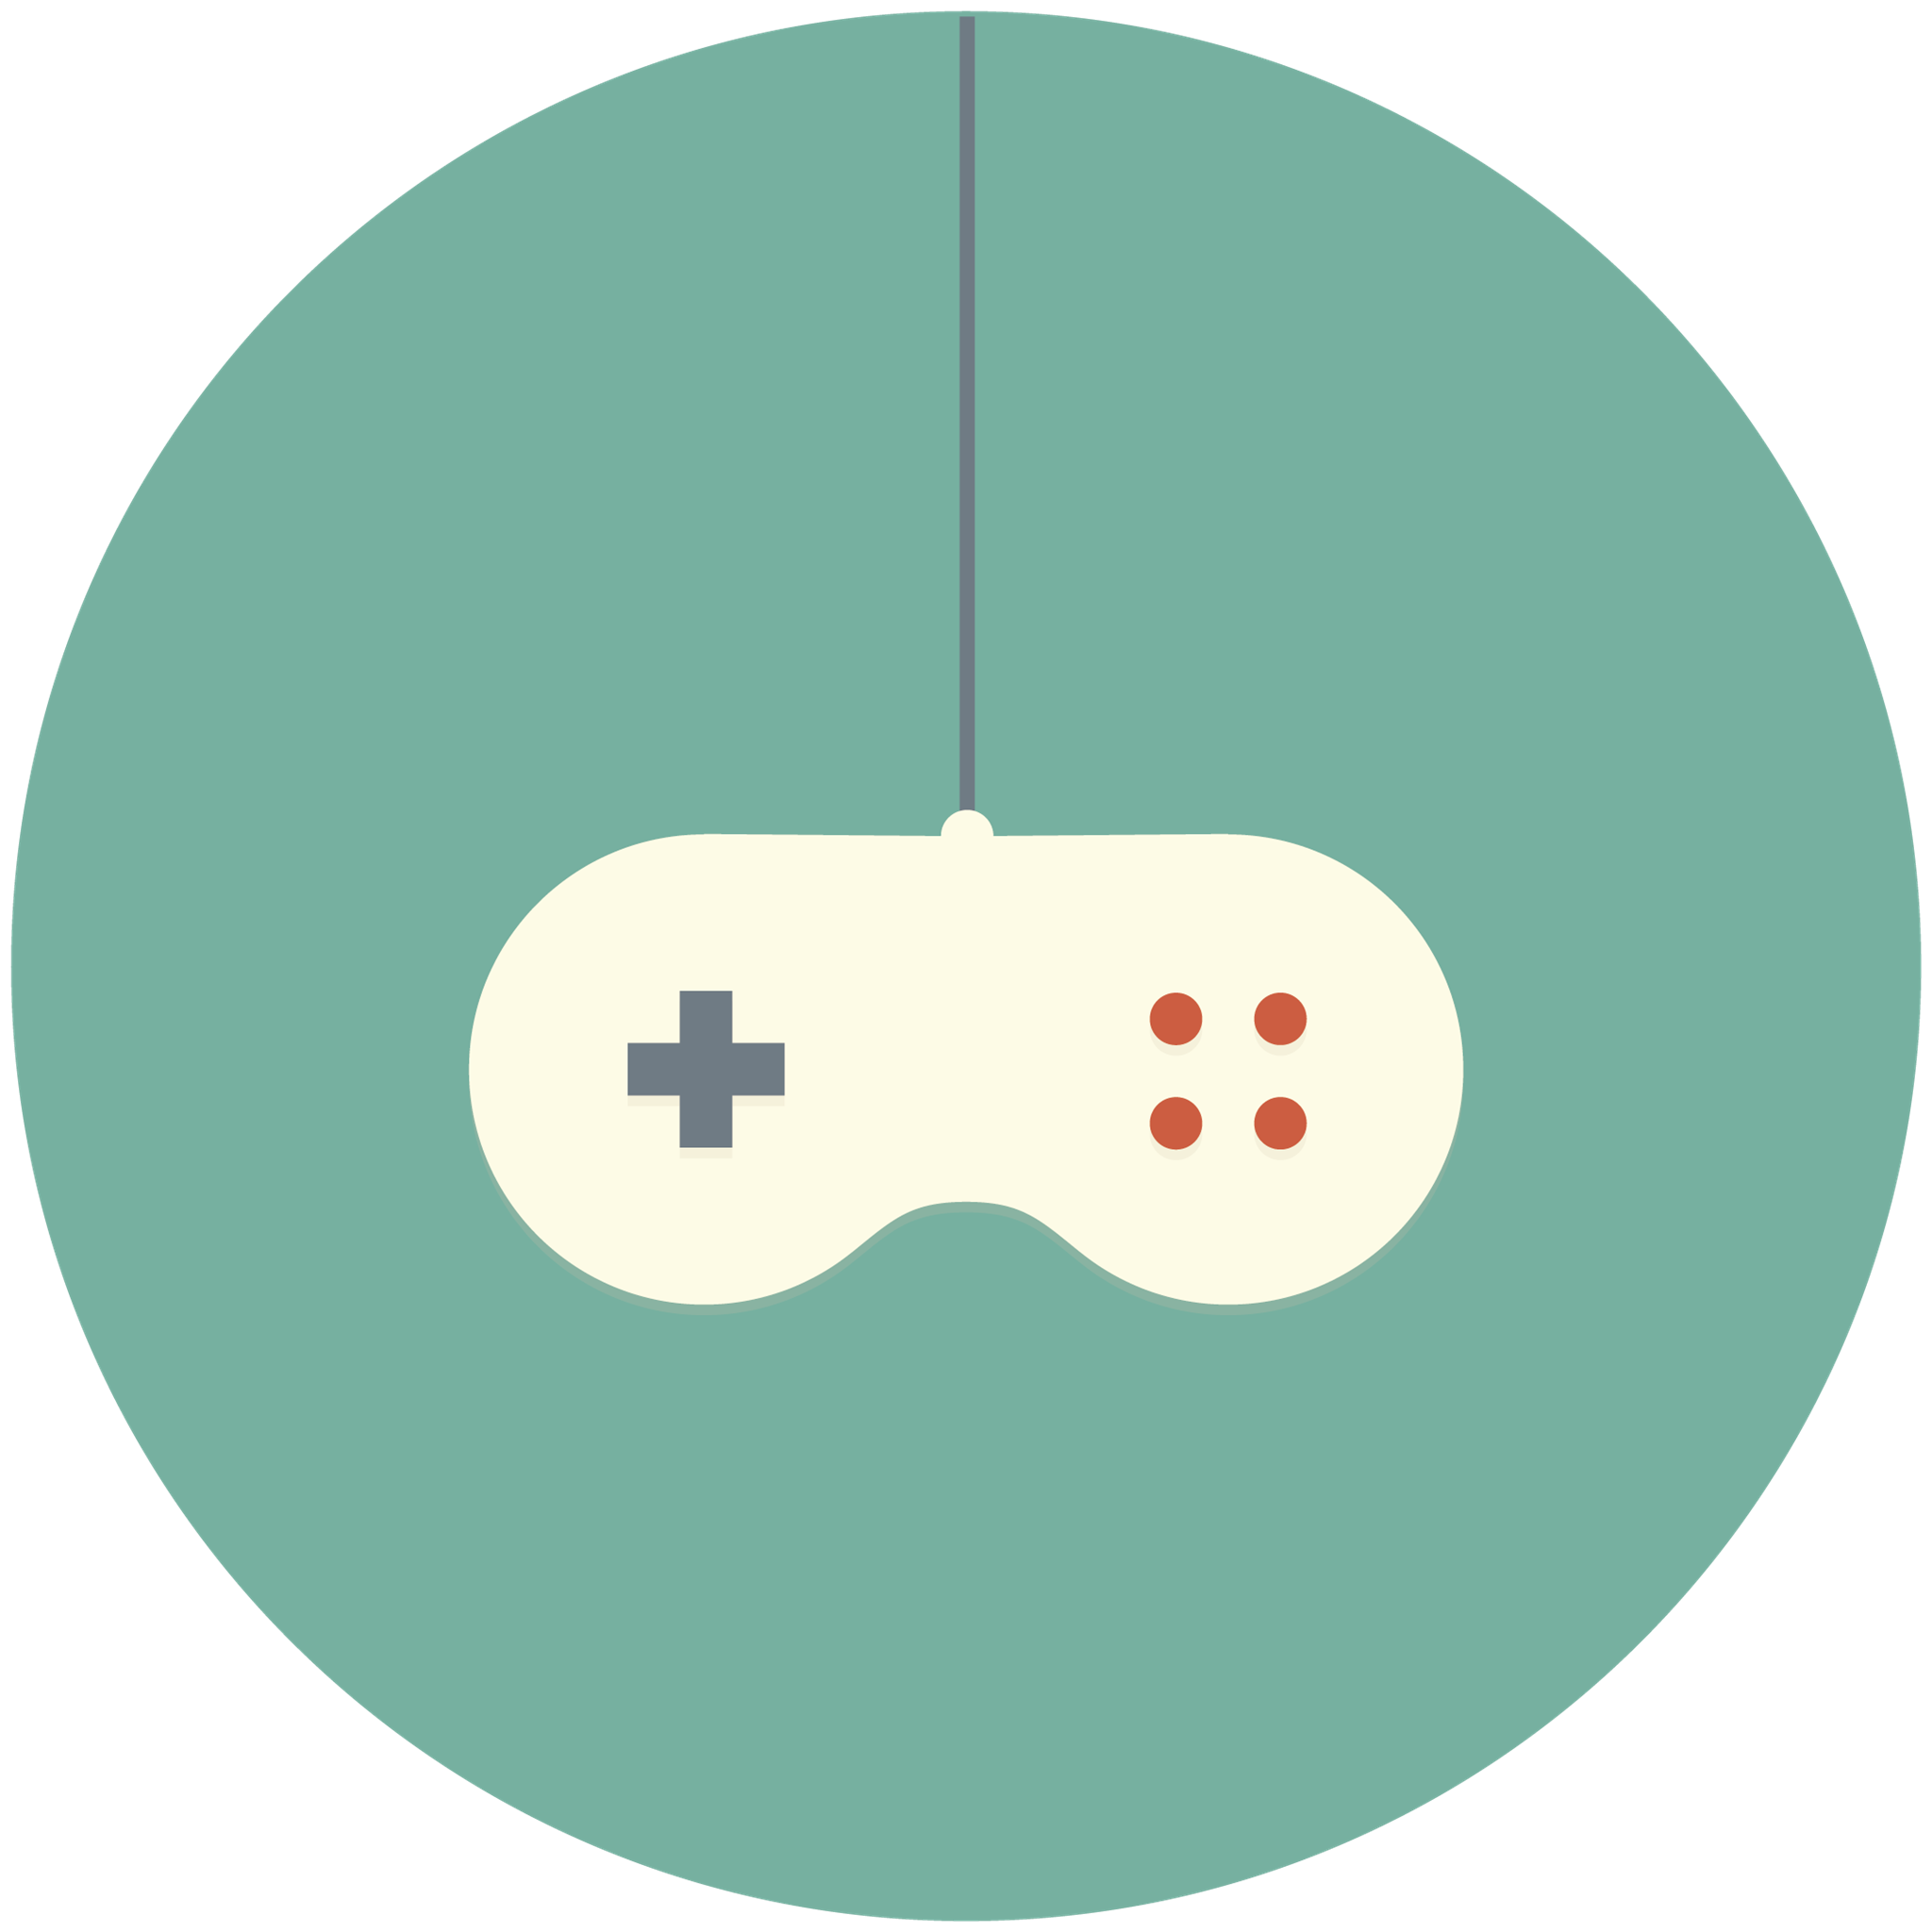 Play clipart electronic game. Player control icon size